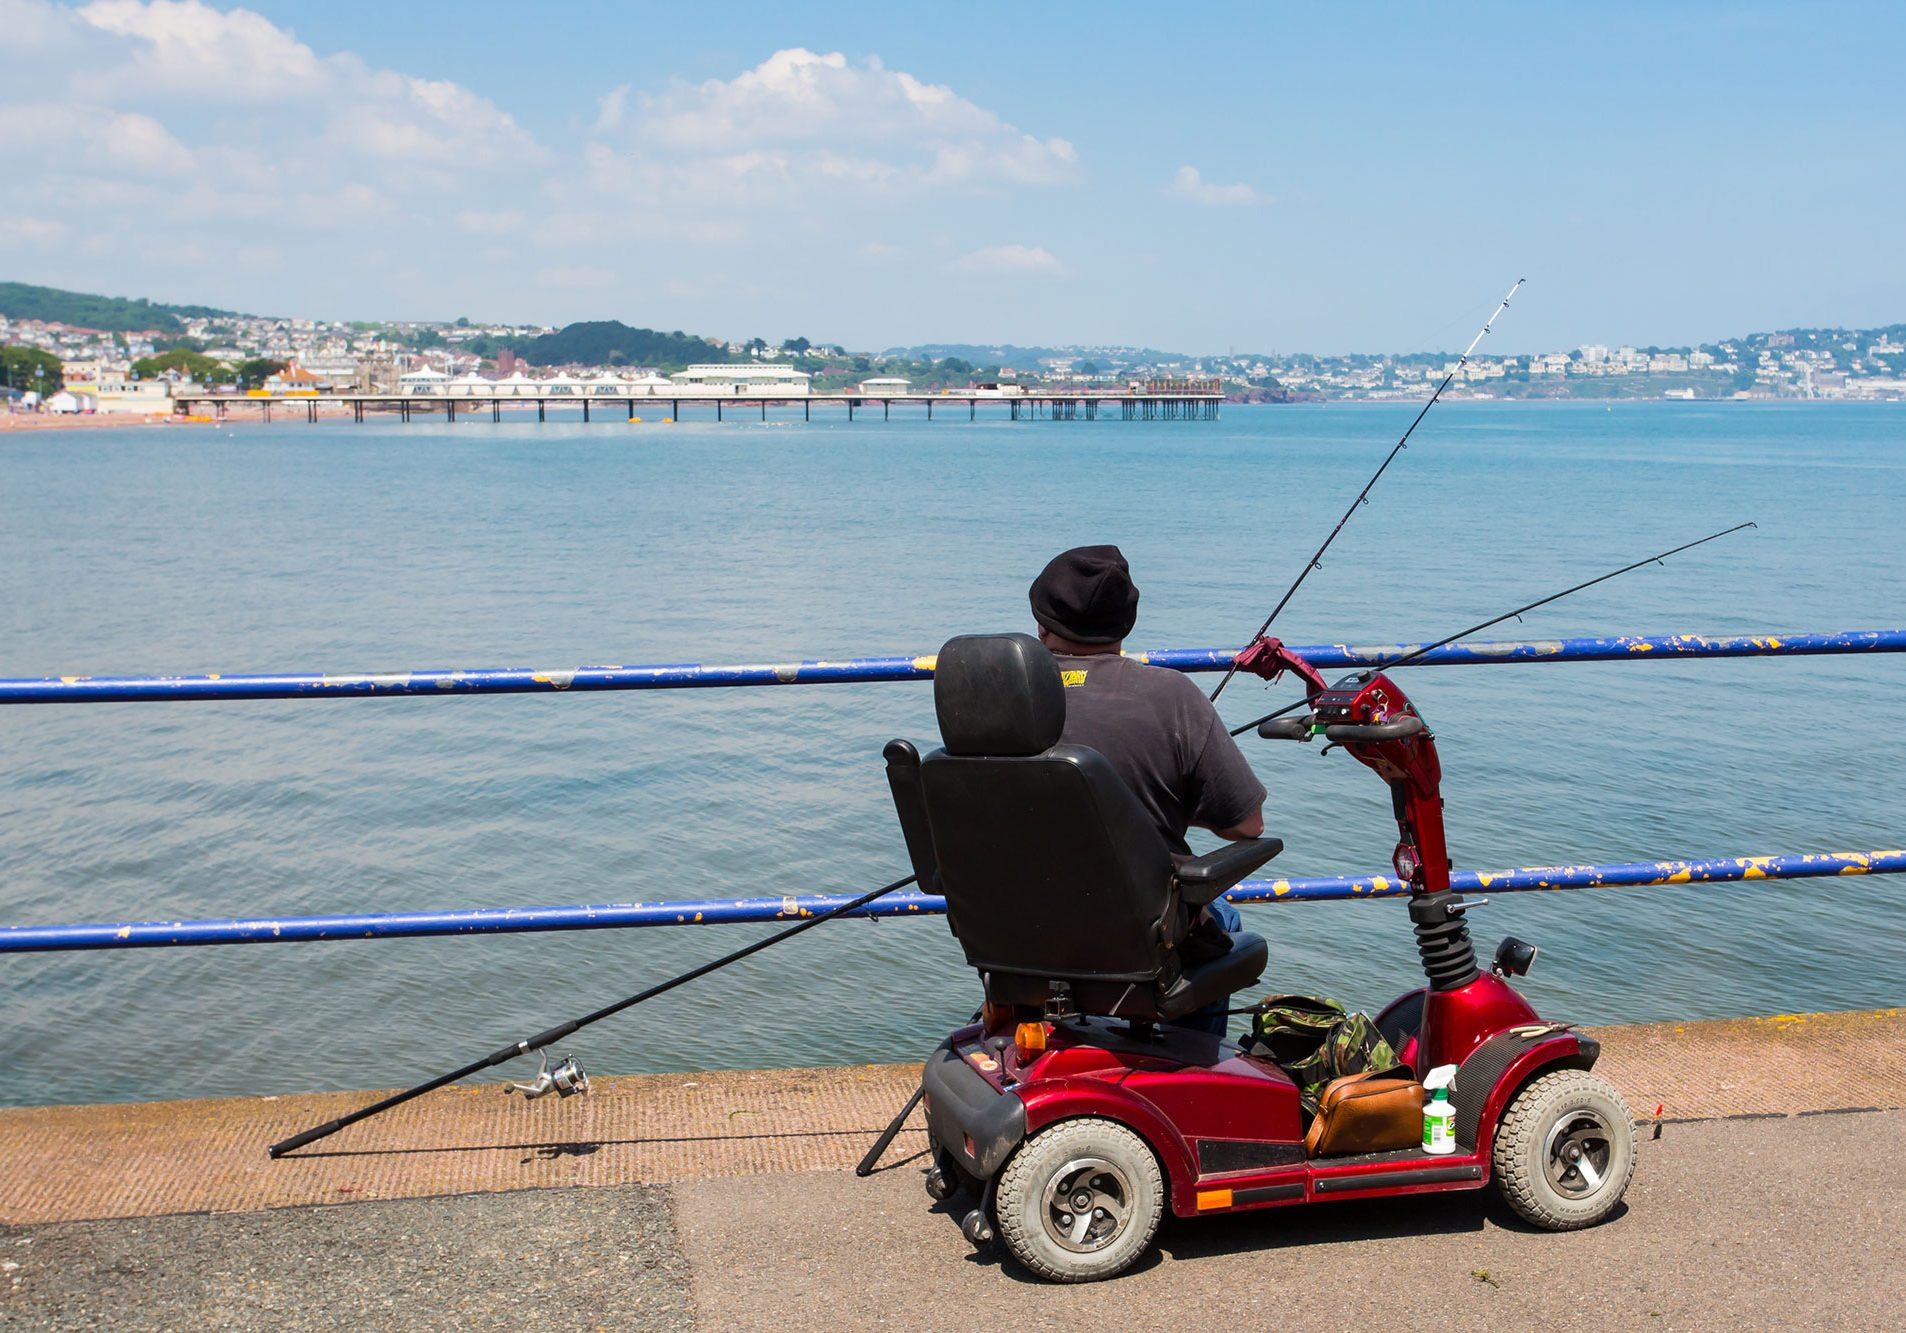 Man fishing on mobility scooter